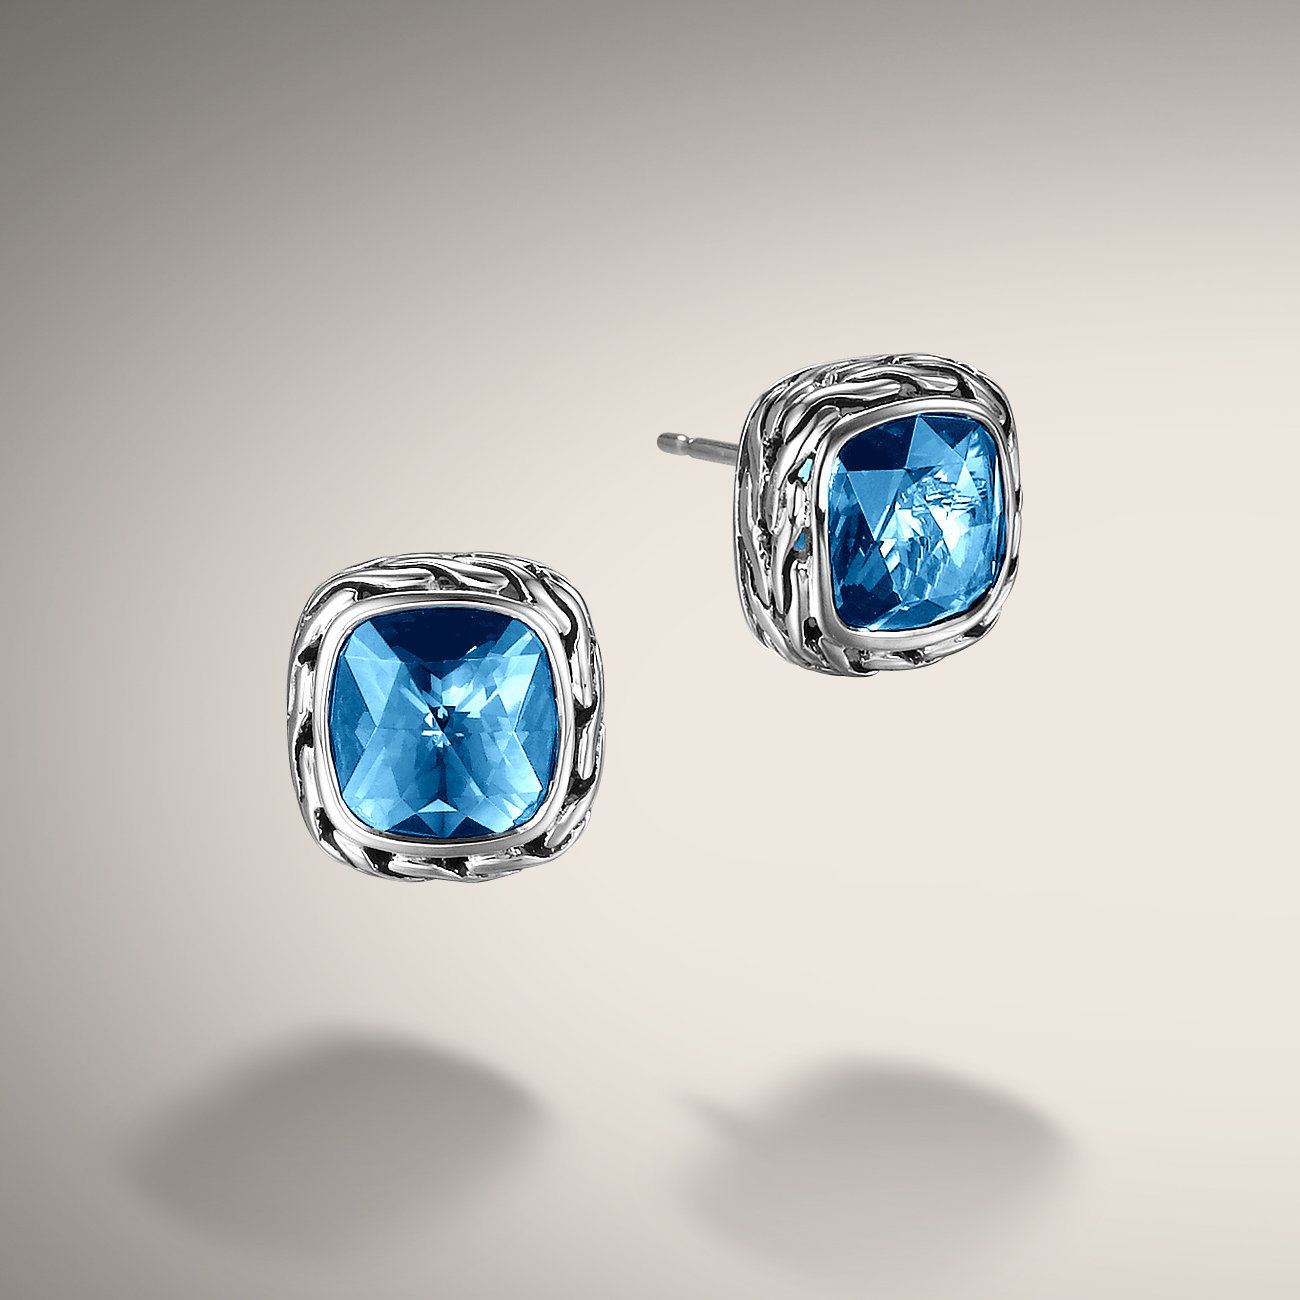 Blue topaz classic chain studs by john hardy. This item is available in many colors to match anything she wears. This piece has classic styling while staying true to John Hardy's classic chain look.  $395